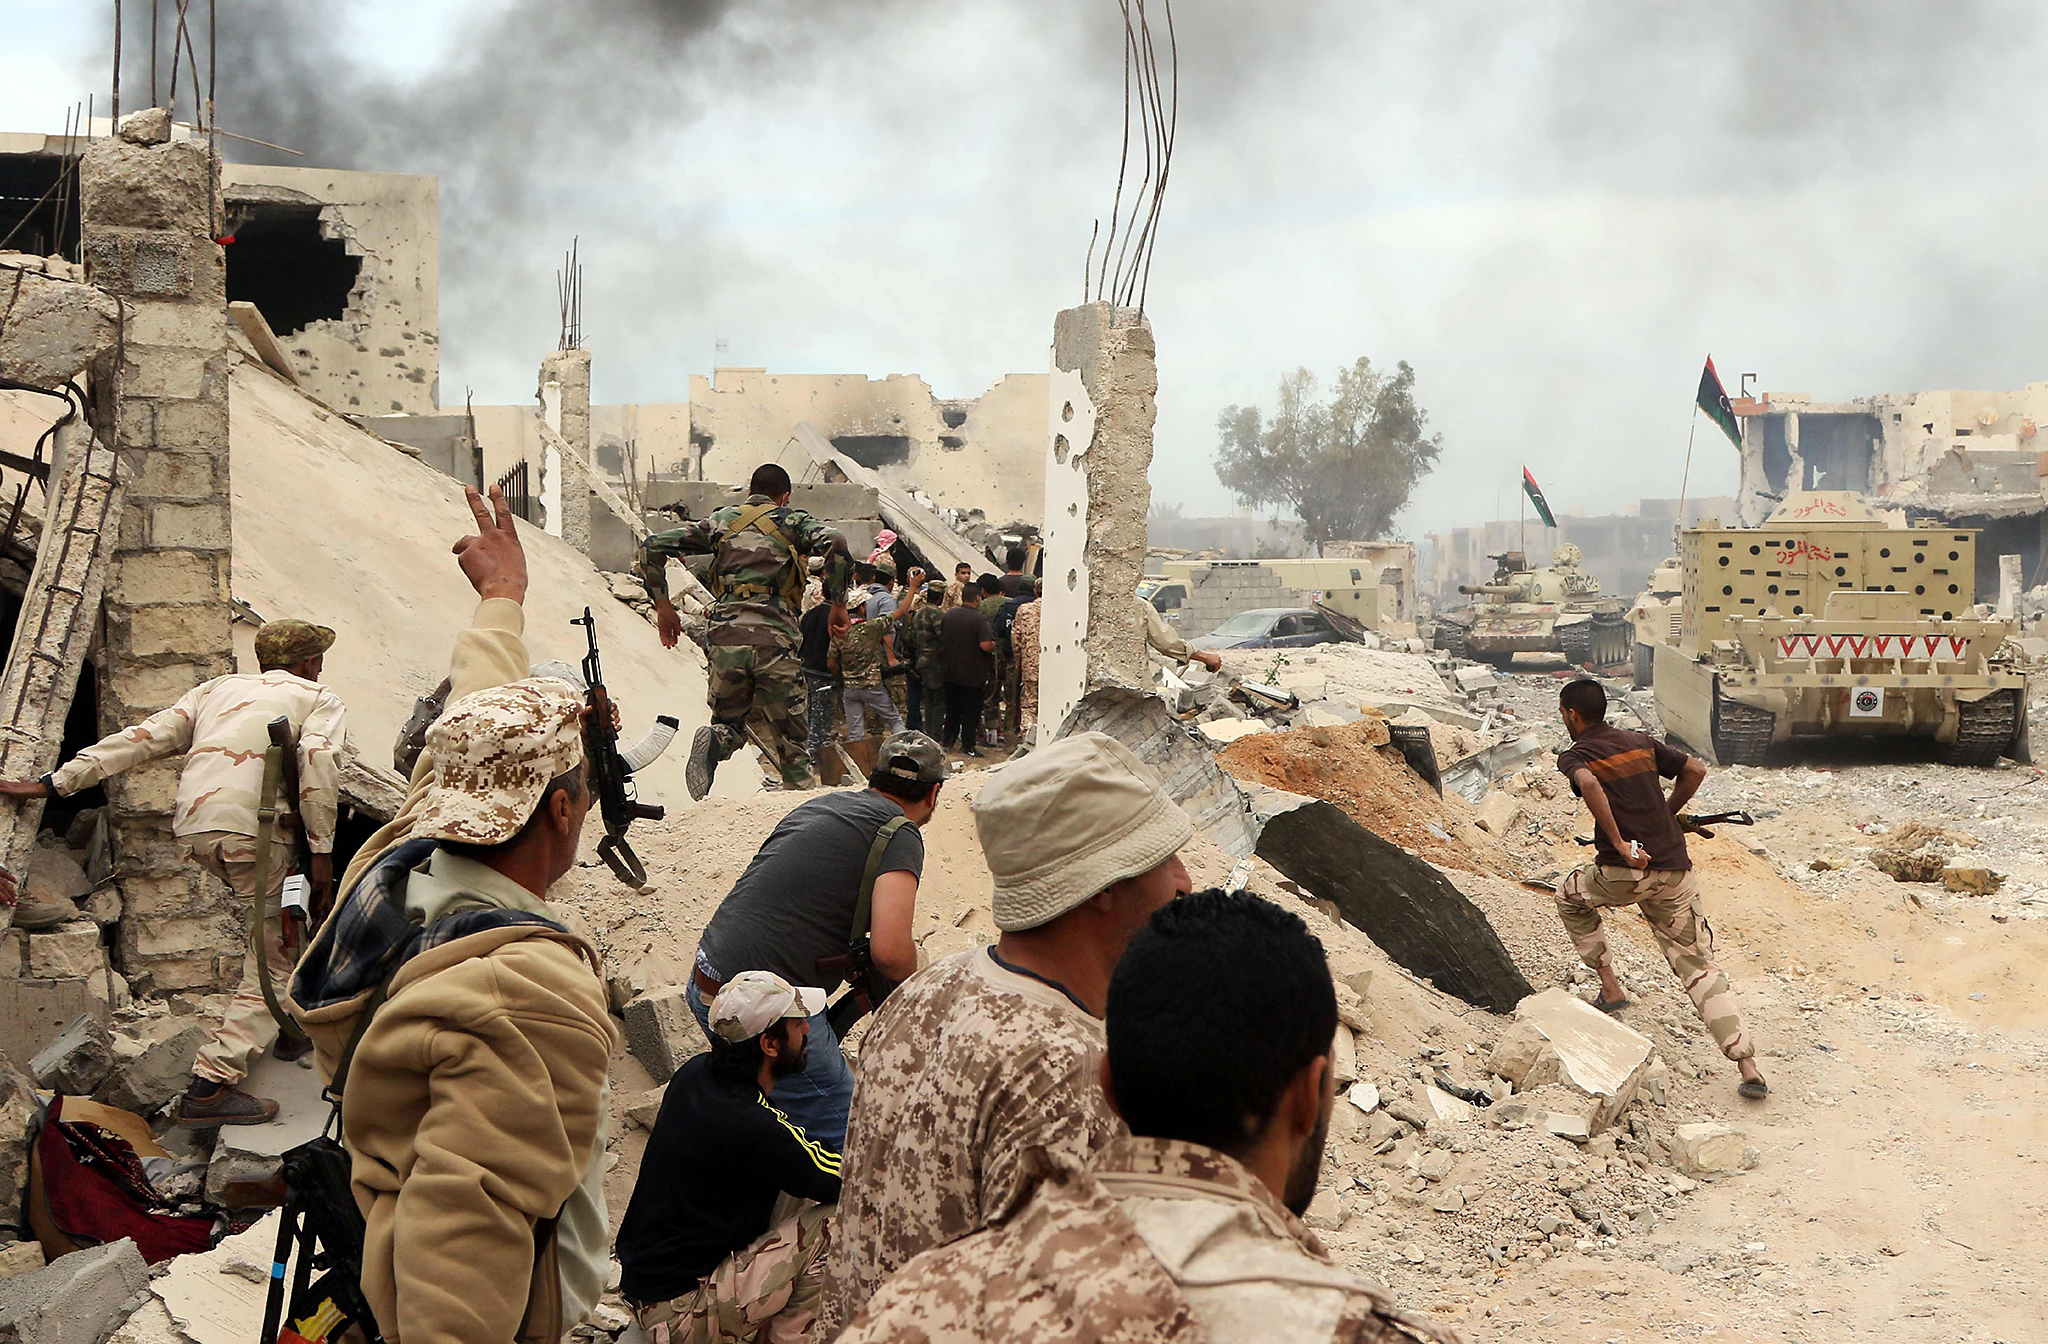 Forces loyal to Libya's Government of National Accord (GNA) hold a position amid the rubble of destroyed buildings in Sirte's Al-Giza Al-Bahriya district on November 21, 2016, during clashes with Islamic State (IS) group jihadists to retake control of the Mediterranean coastal city. / AFP PHOTO / MAHMUD TURKIAMAHMUD TURKIA/AFP/Getty Images